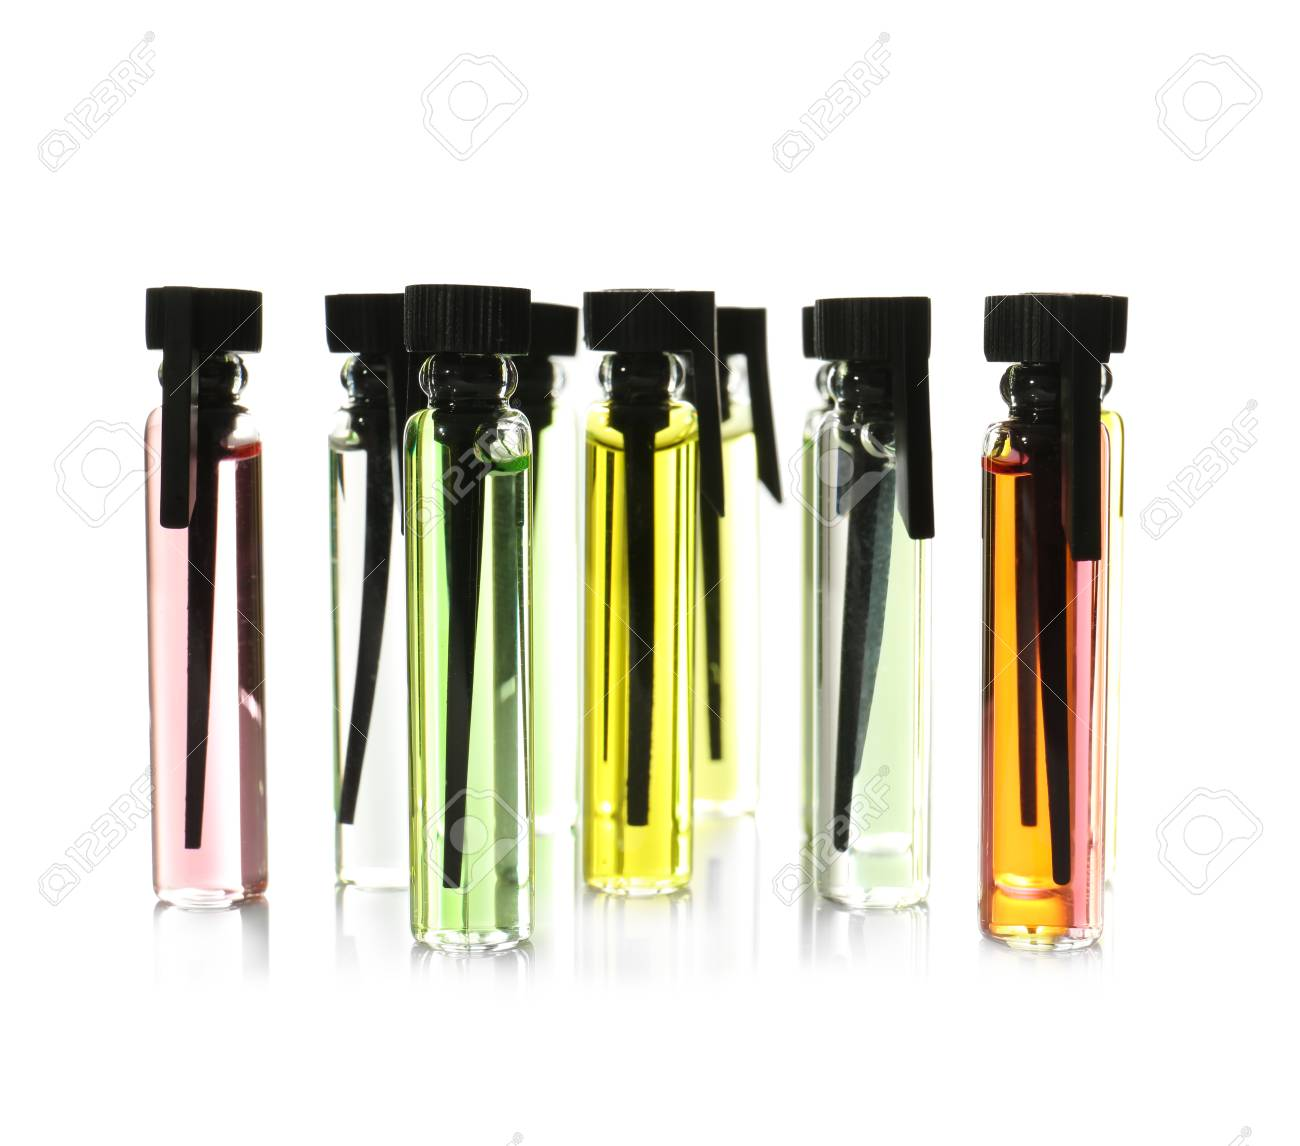 ff0328086 Perfume Samples On White Background Stock Photo, Picture And Royalty ...